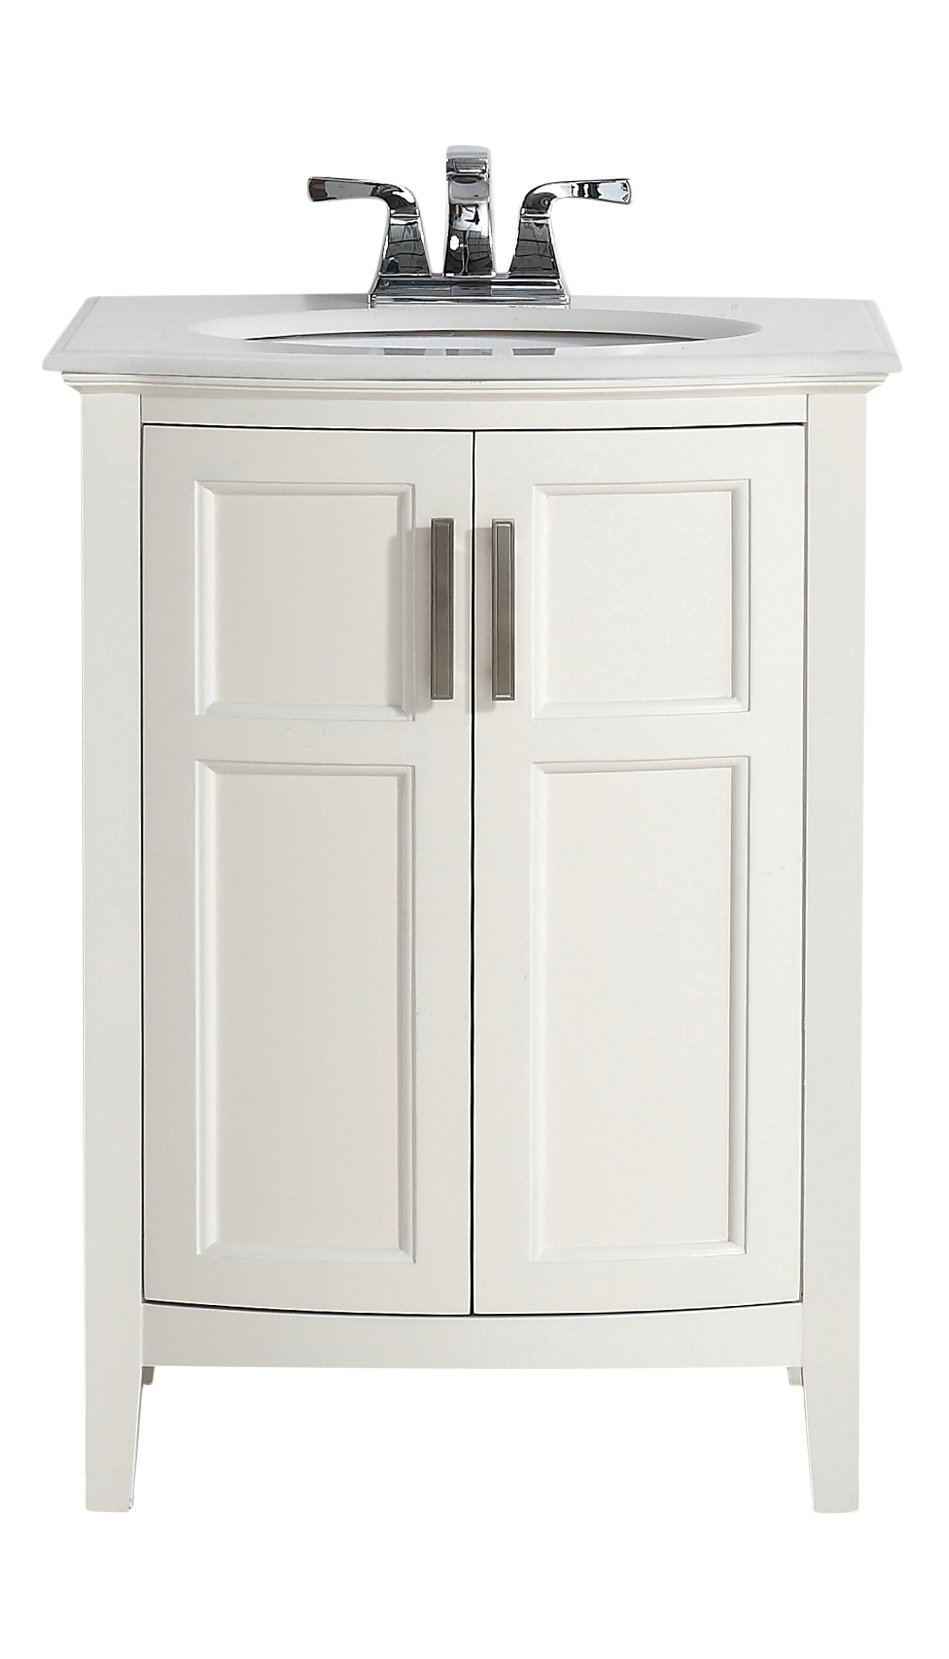 Simpli Home Winston 24'' Bath Vanity Rounded Front with Quartz Marble Top, Soft White by Simpli Home (Image #3)